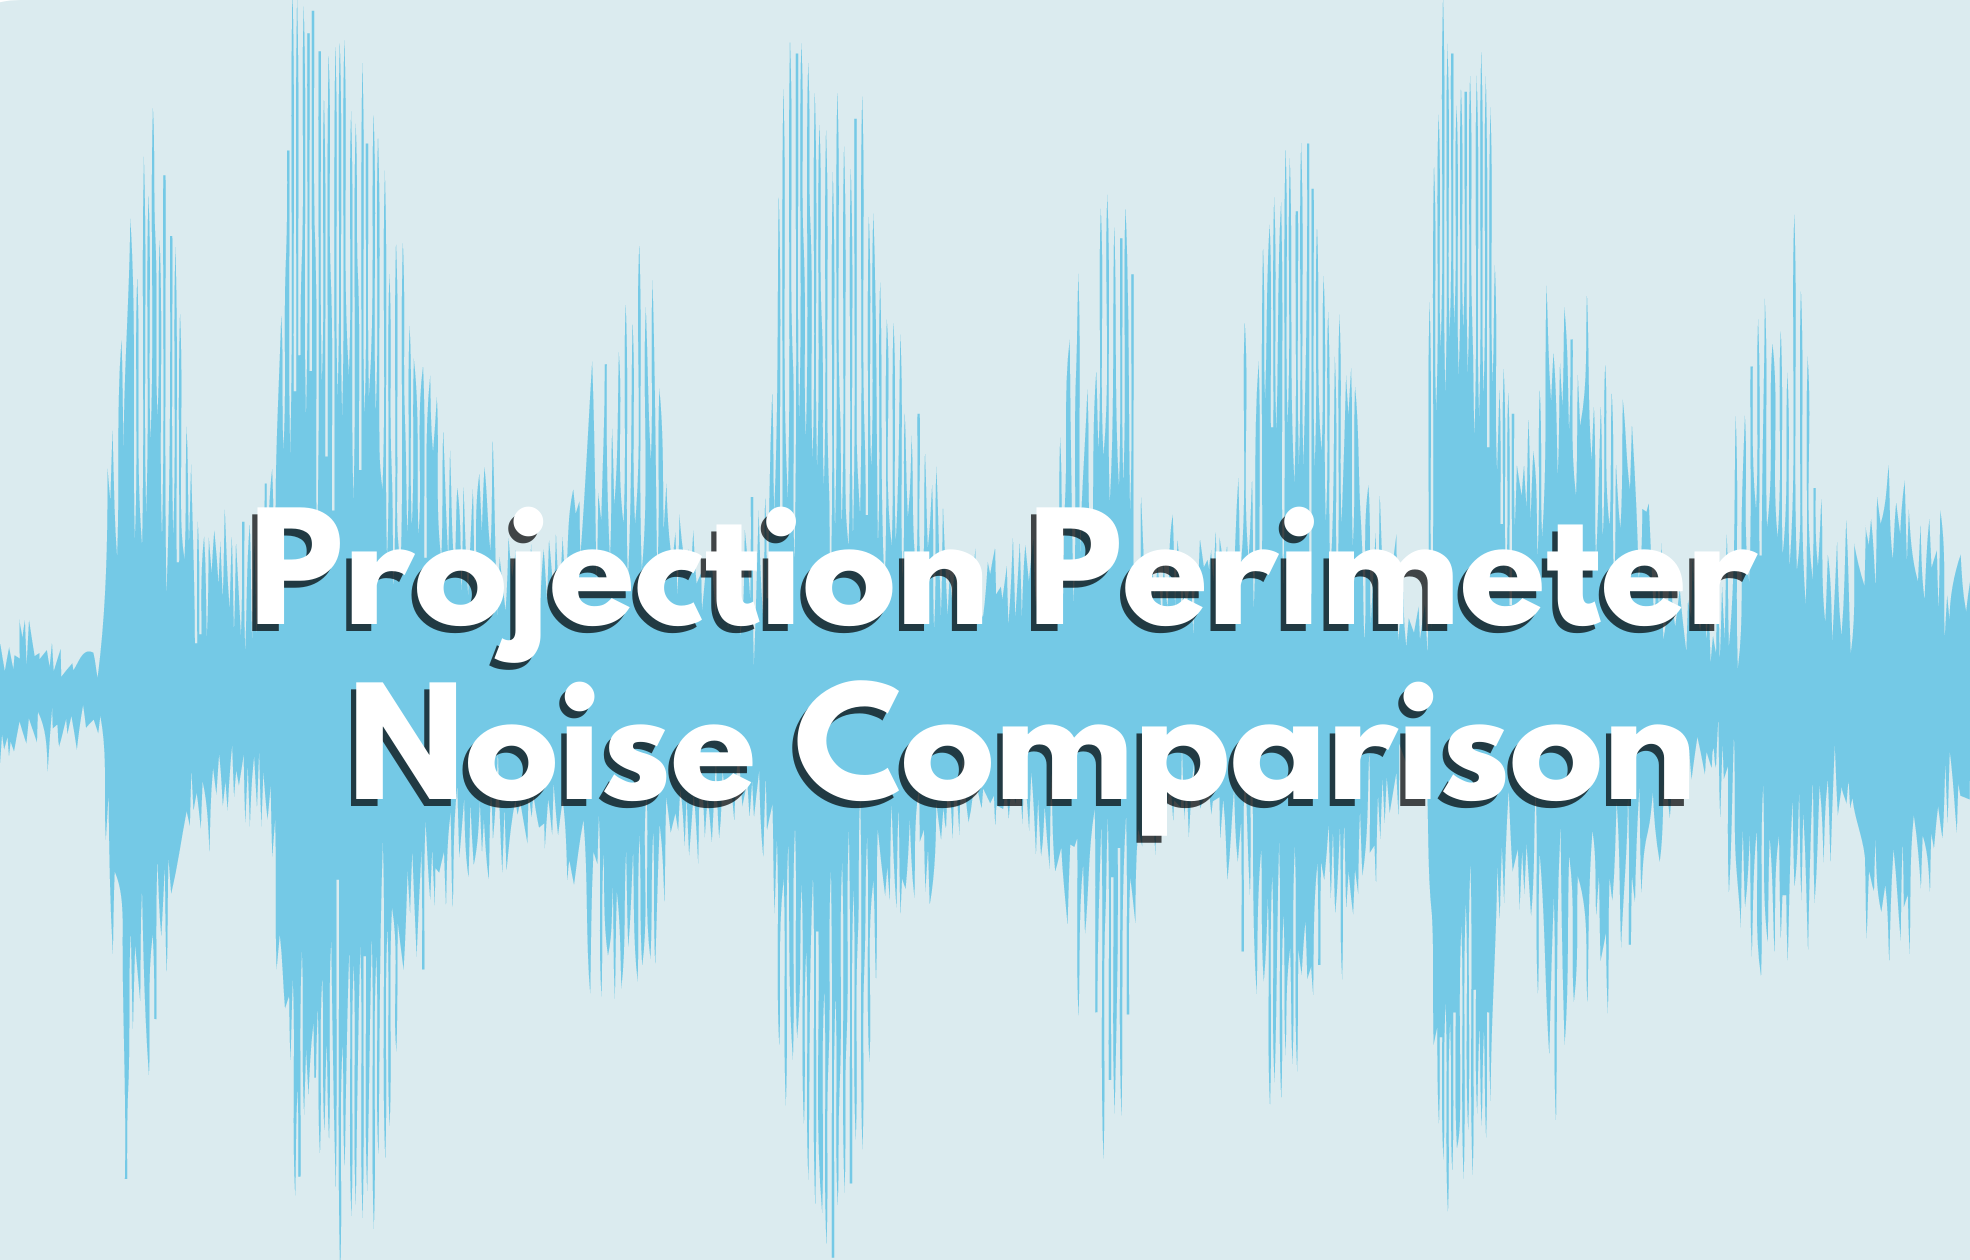 Projection Perimeter Noise Comparison